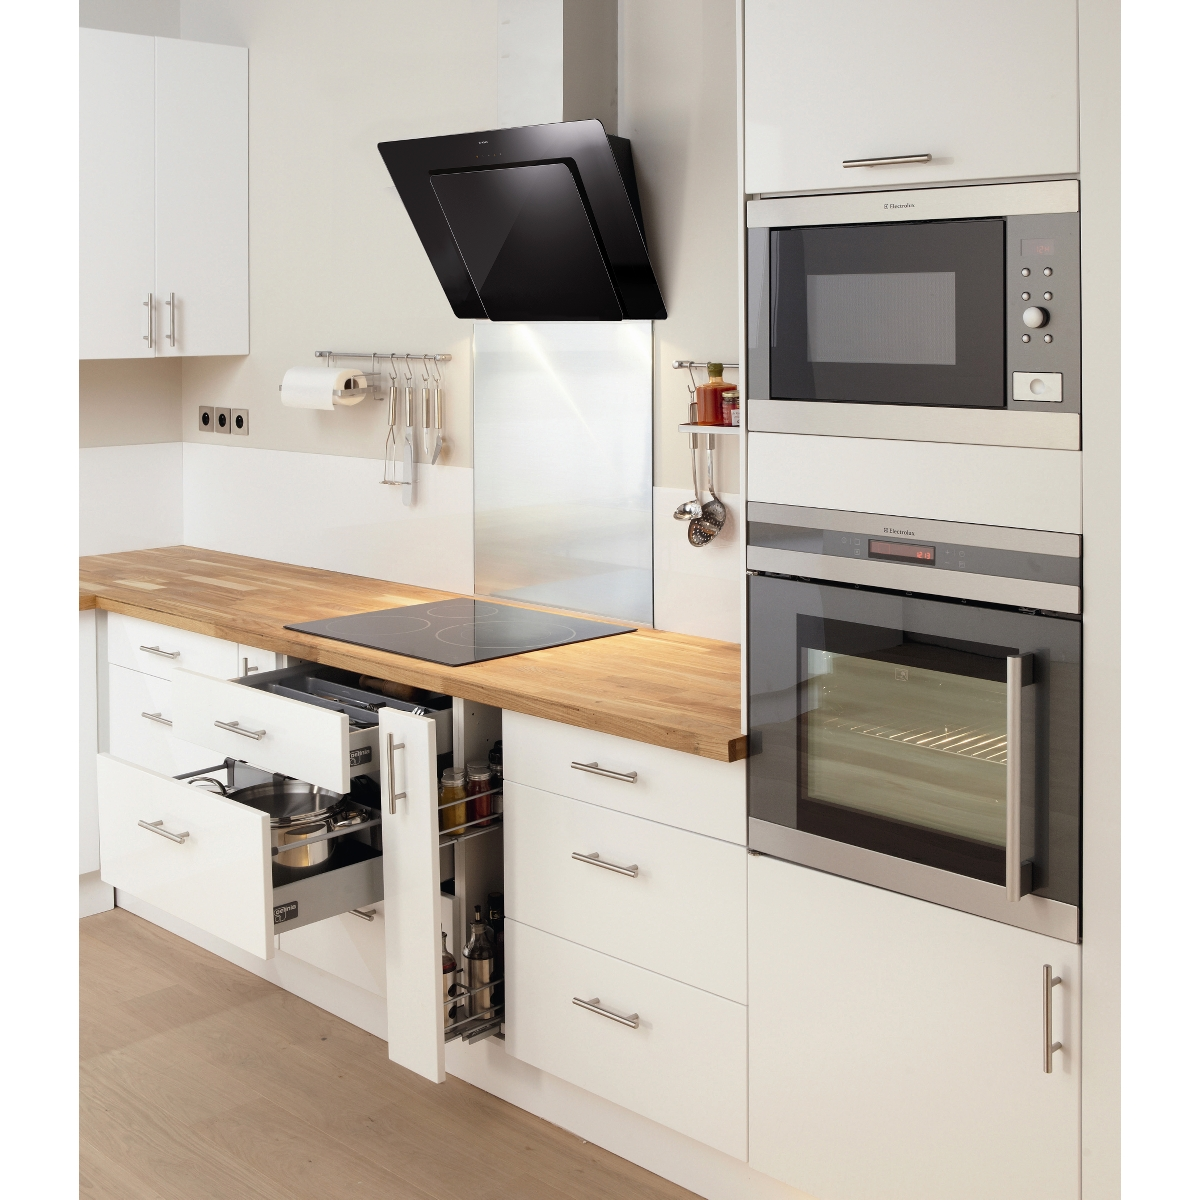 Leroy merlin cucina delinia galaxy cucine componibili home sweet home pinterest cucina - Ikea mobili cucina componibili ...